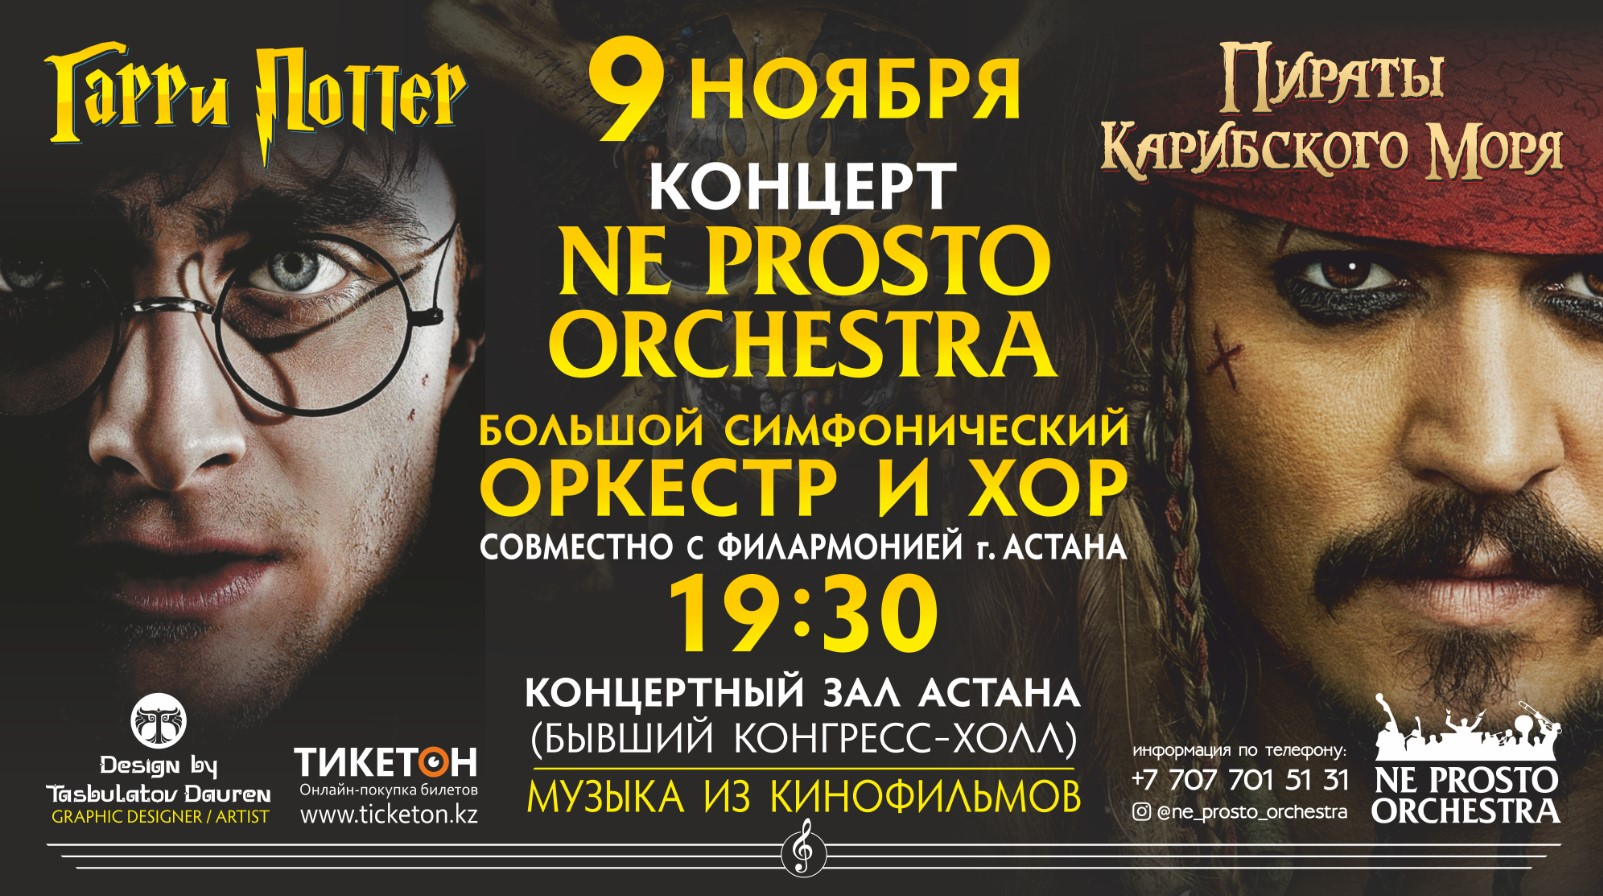 Concert of the symphony orchestra